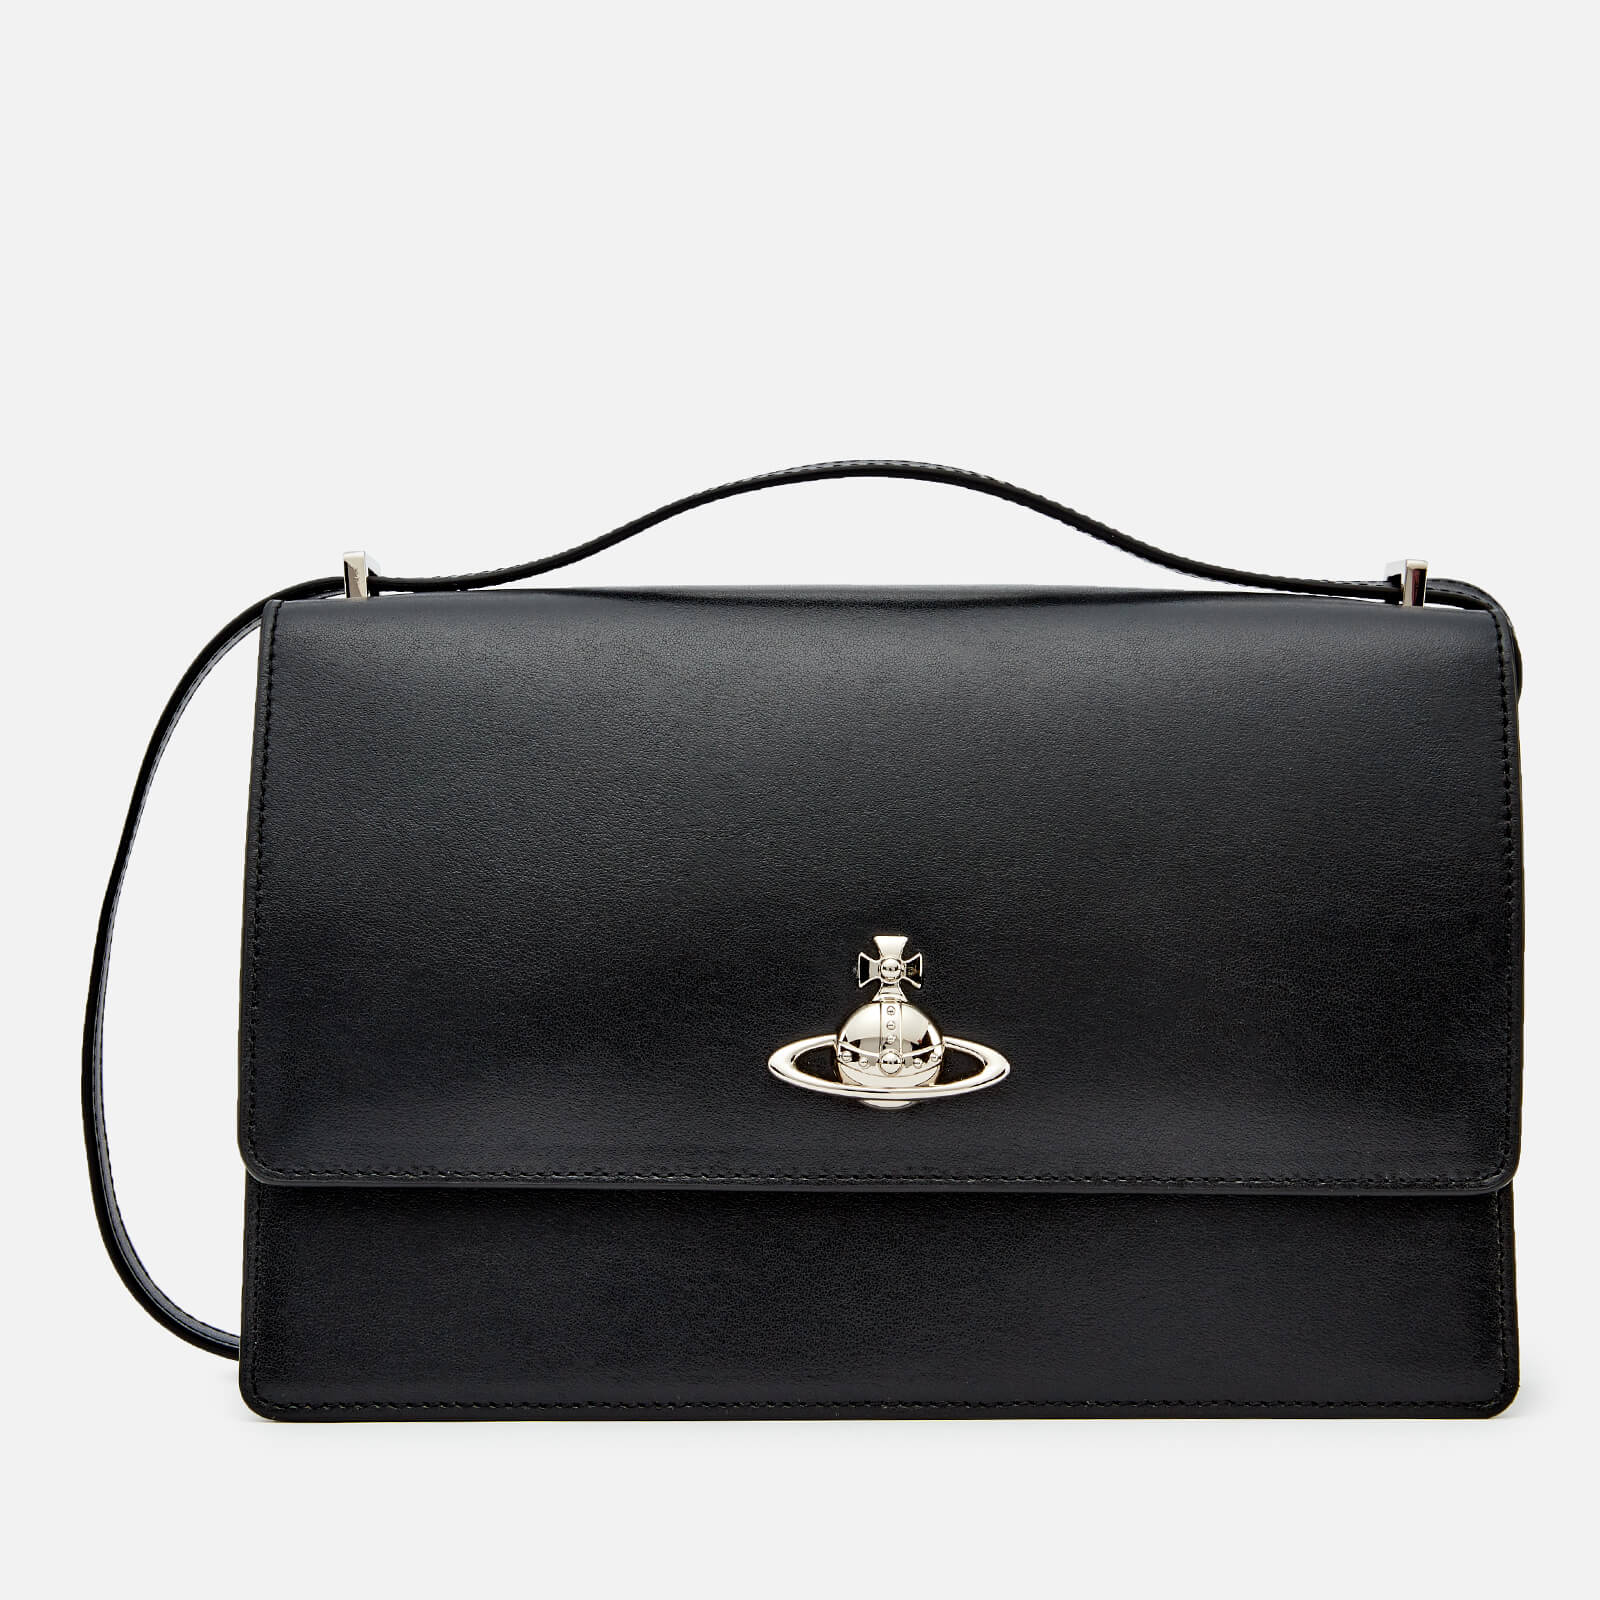 c8fdce7d5b2f Vivienne Westwood Women's Matilda Large Bag with Flap - Black - Free UK  Delivery over £50